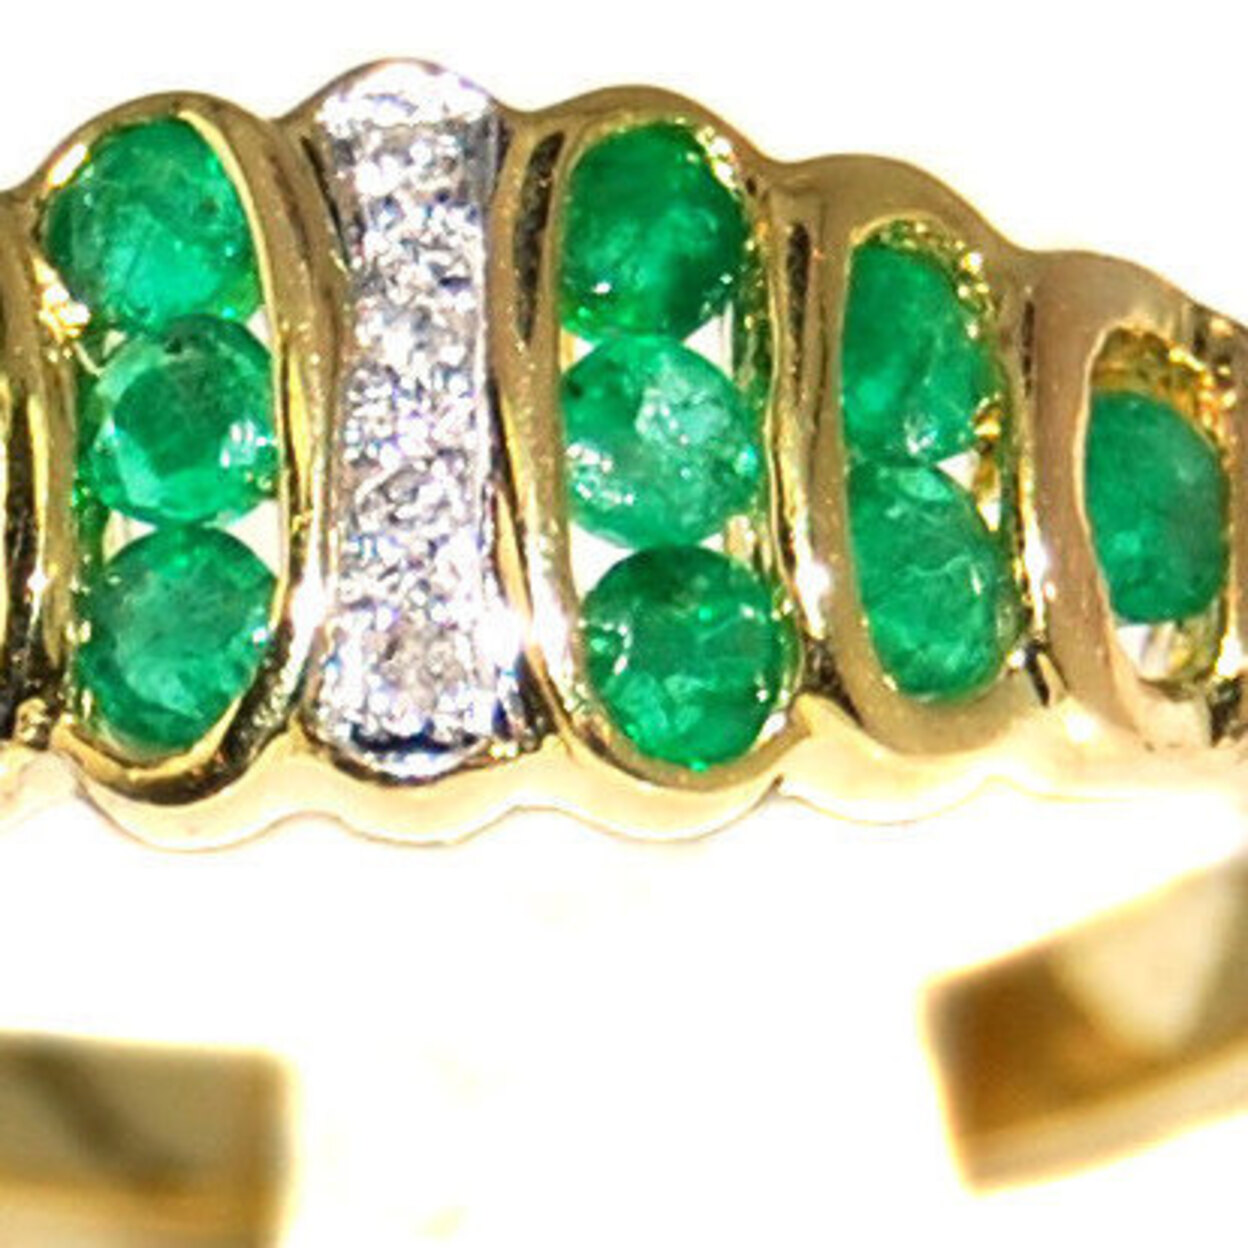 Emerald Rings For Women Costco Search